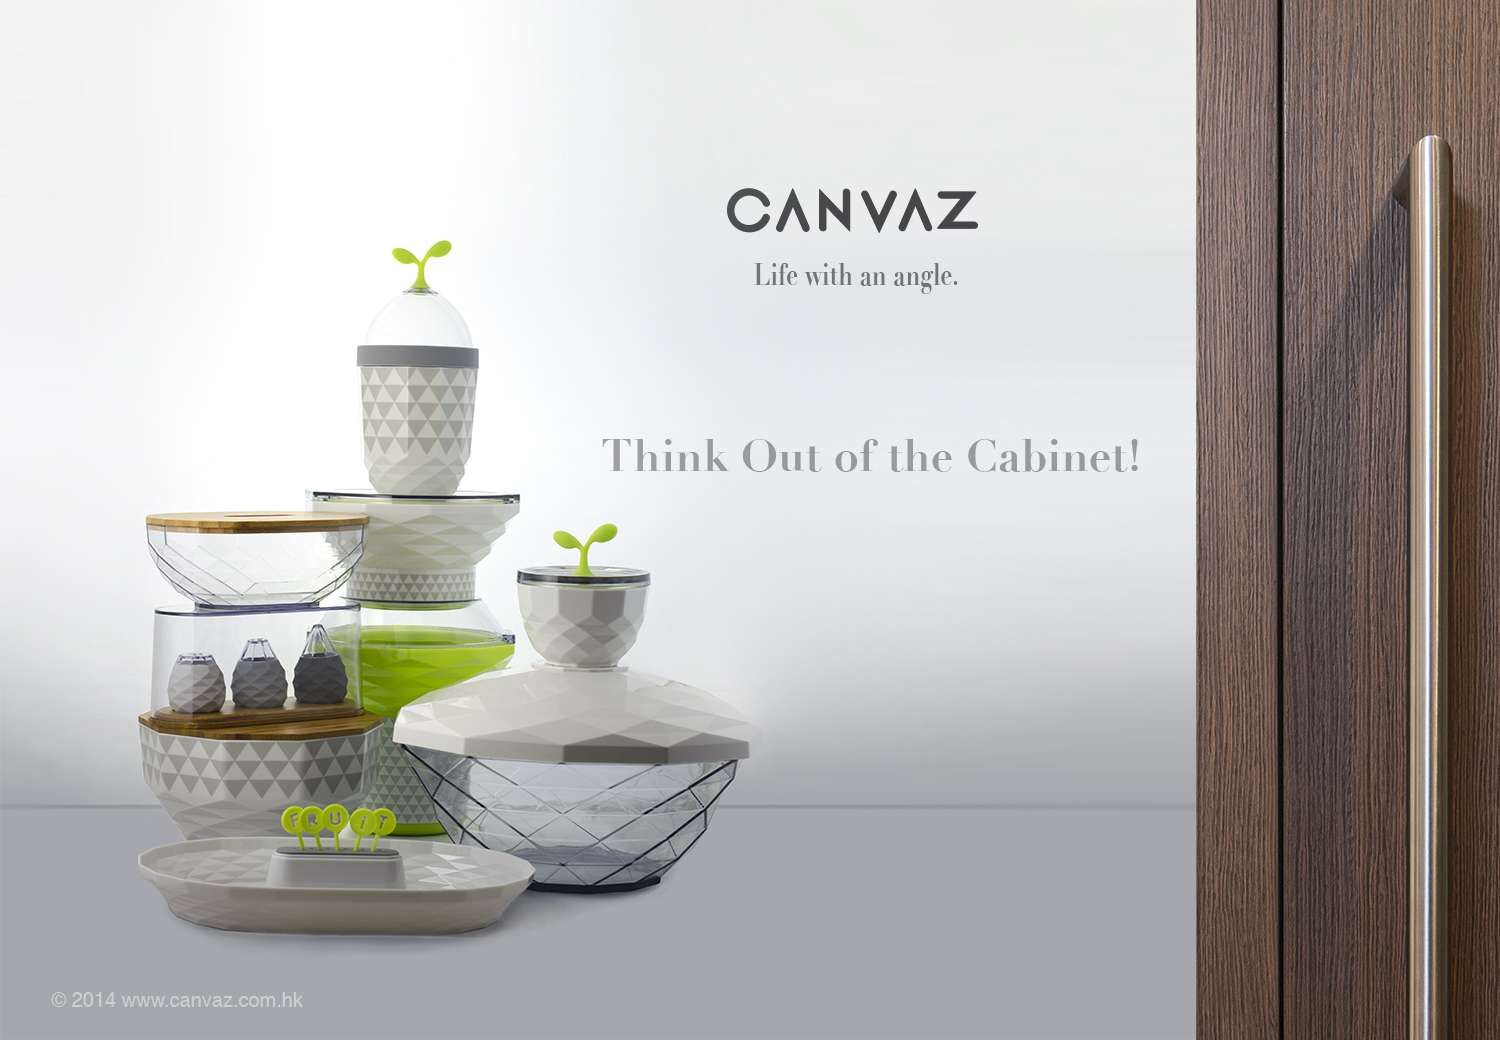 holistic innovation - Canvaz housewares collection by Justin Tsui - Artefactx